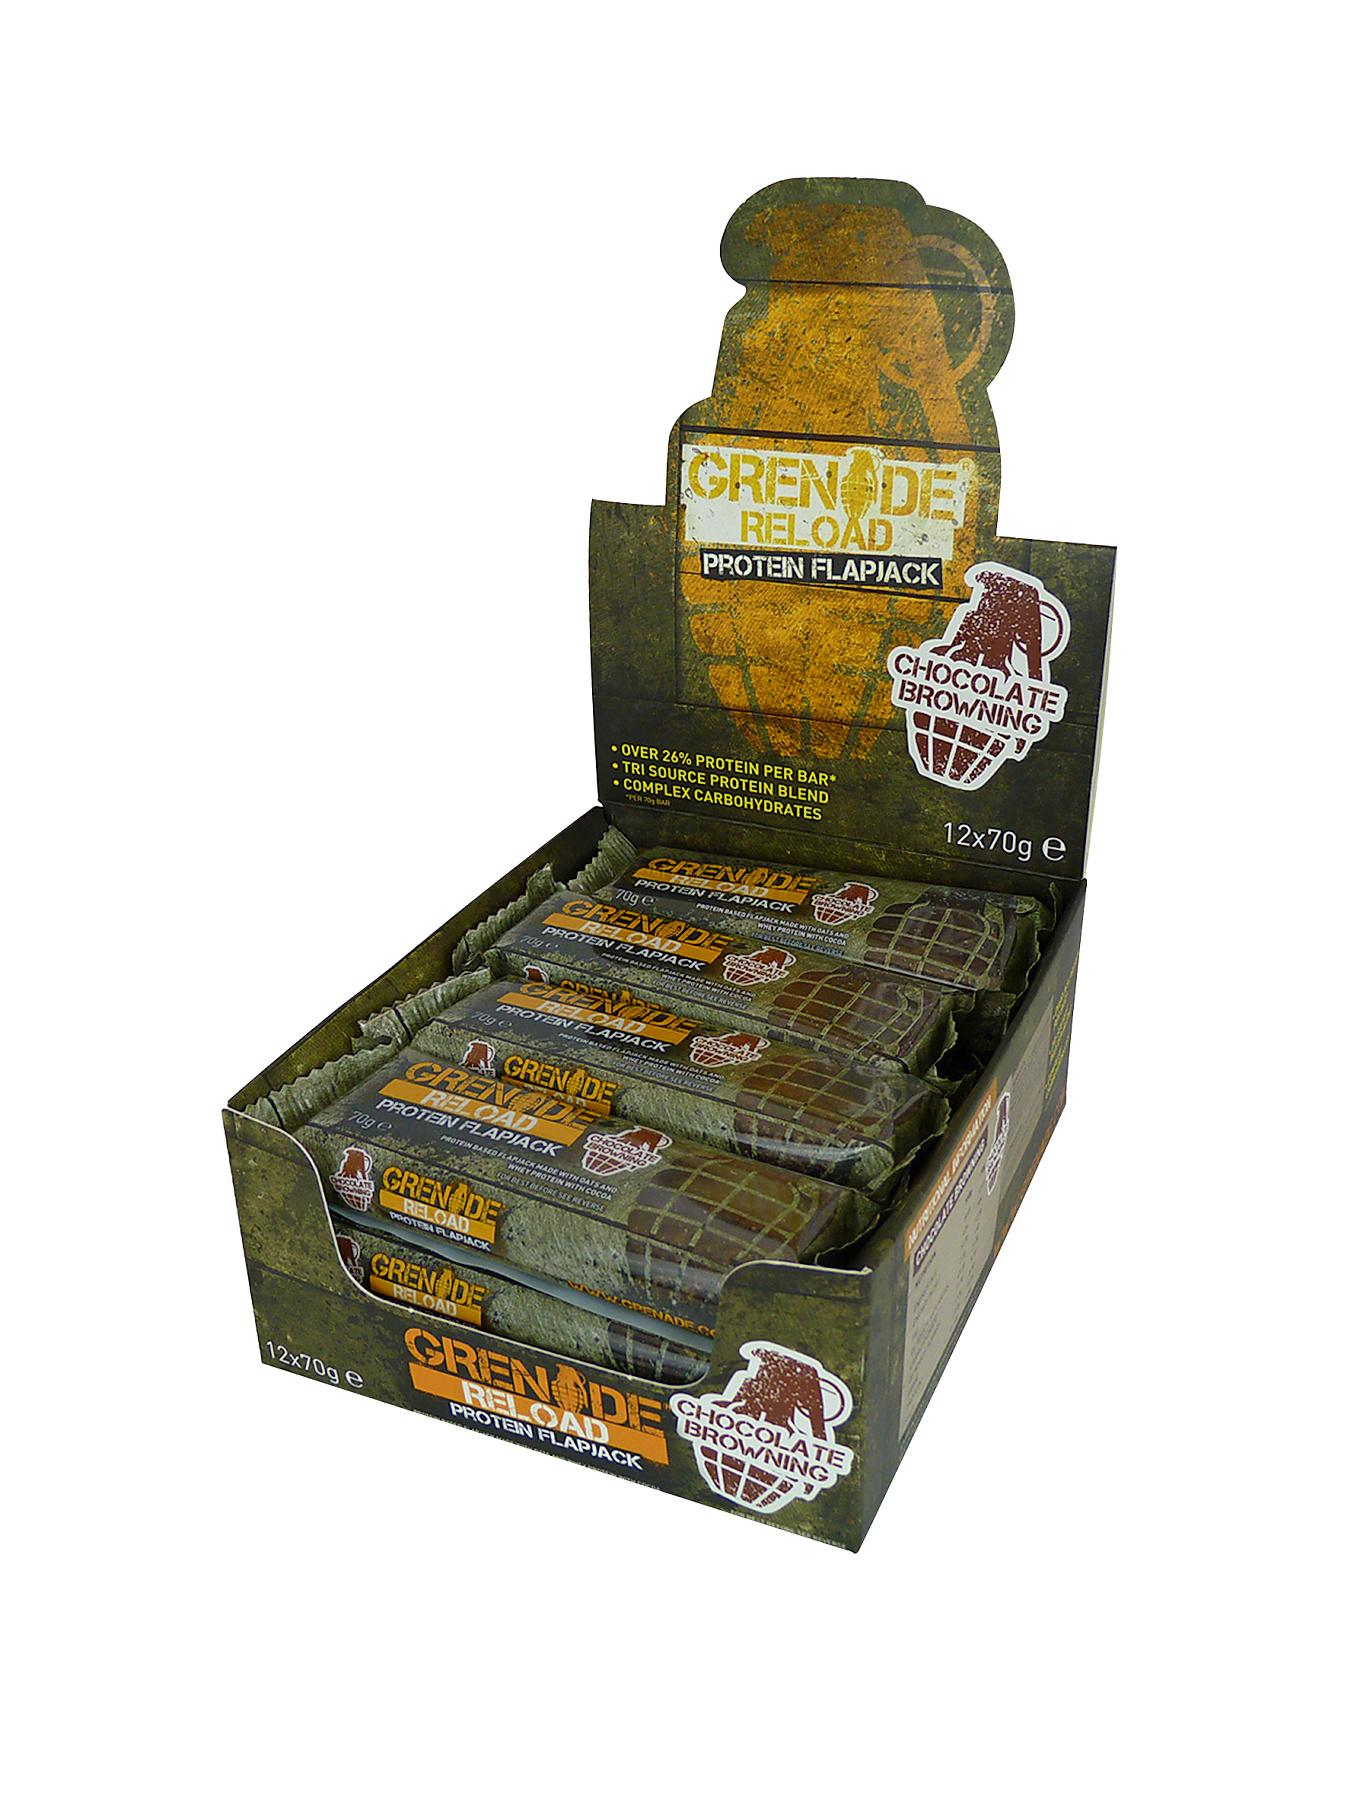 GRENADE Reload Chocolate Brownie Protein Flapjack 12 x 70g Bars